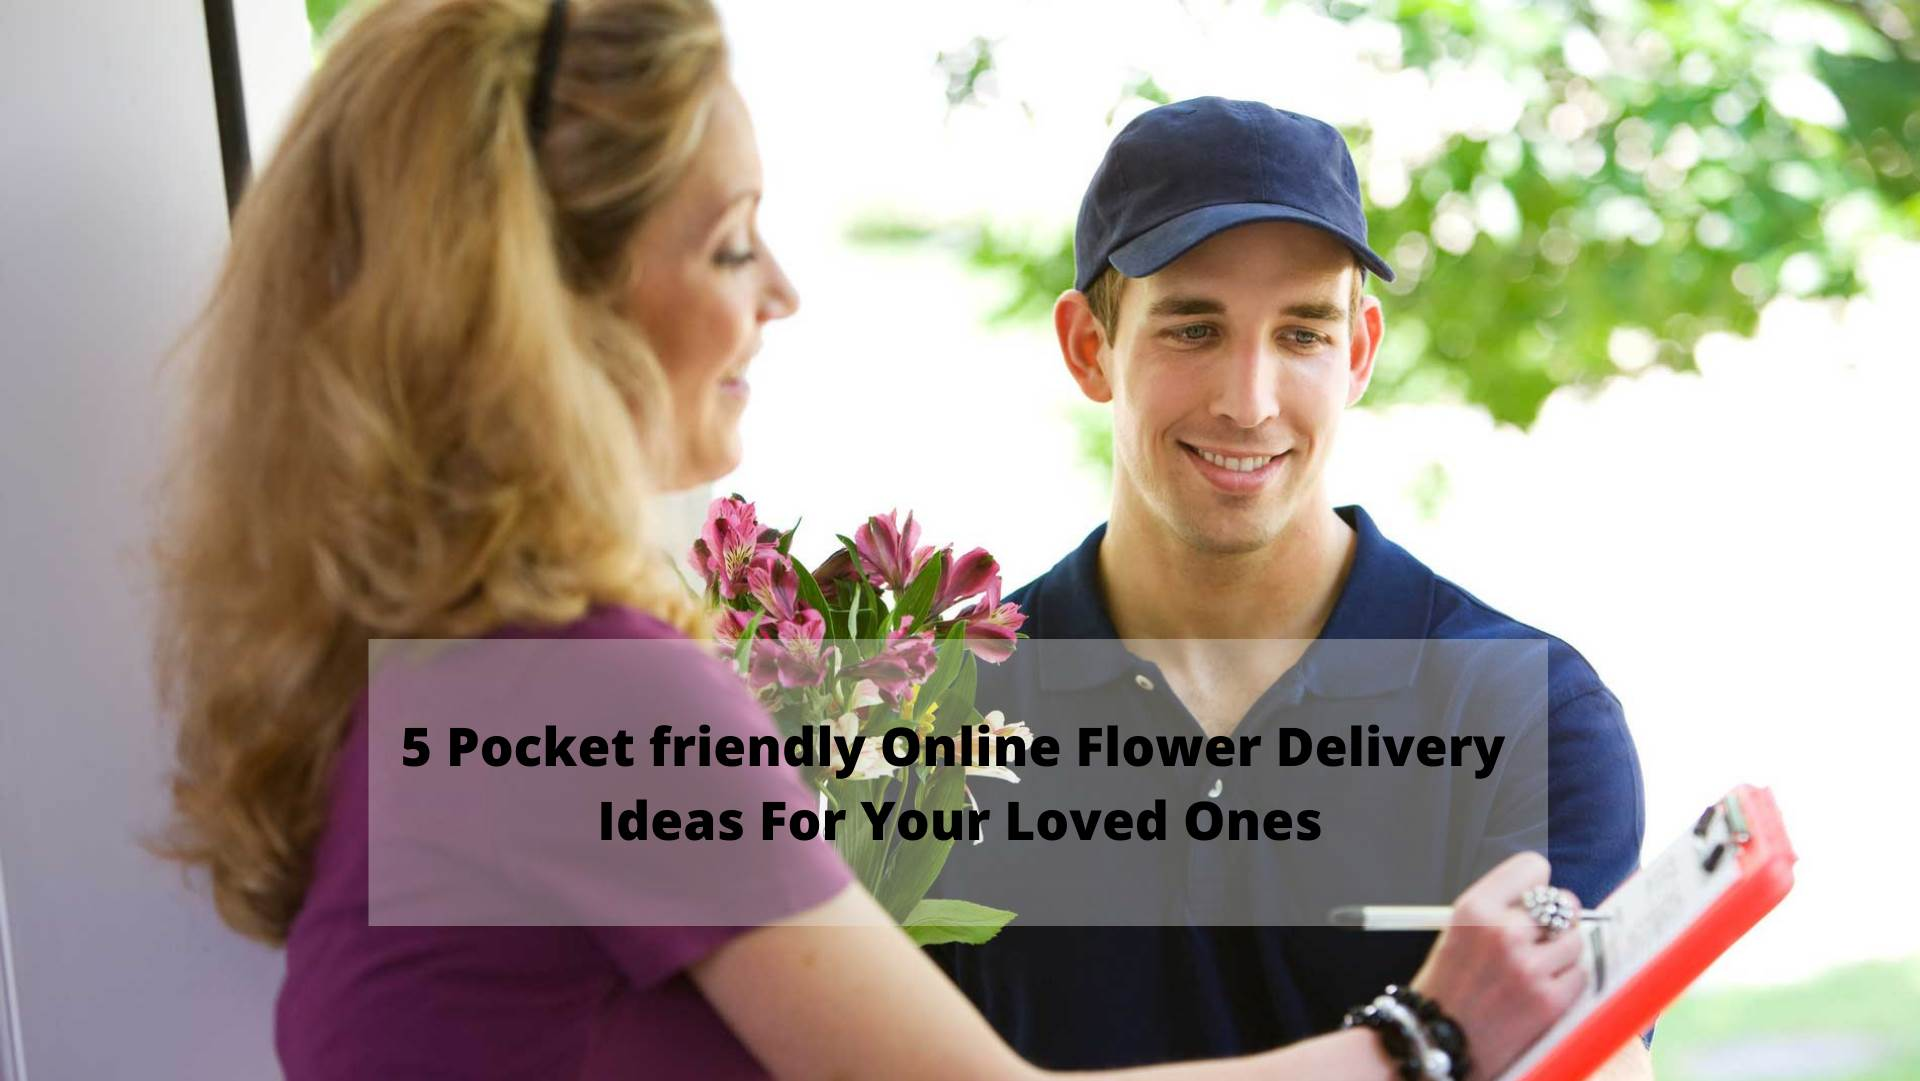 5 Pocket friendly Online Flower Delivery Ideas For Your Loved Ones